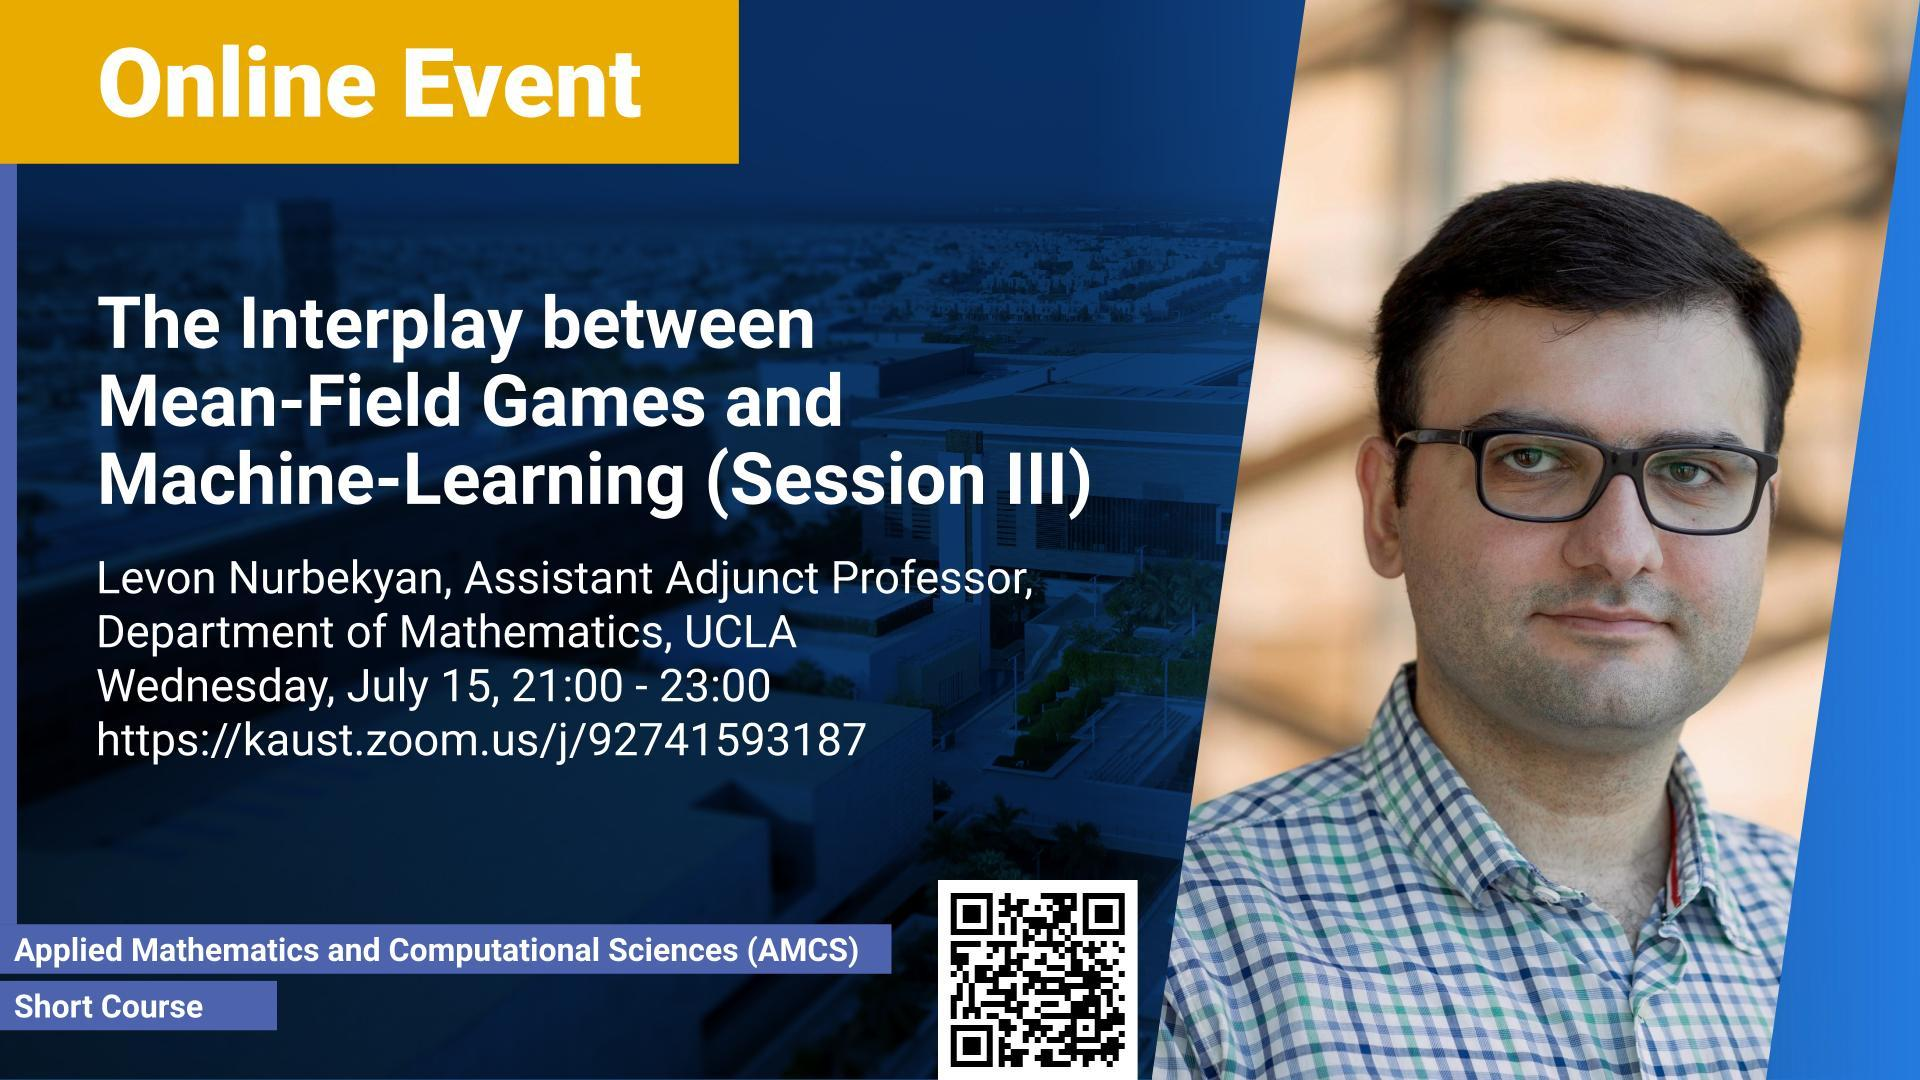 KAUST CEMSE AMCS Short Course Levon Nurbekyan The Interplay between Mean Field Games and Machine Learning (Session III)